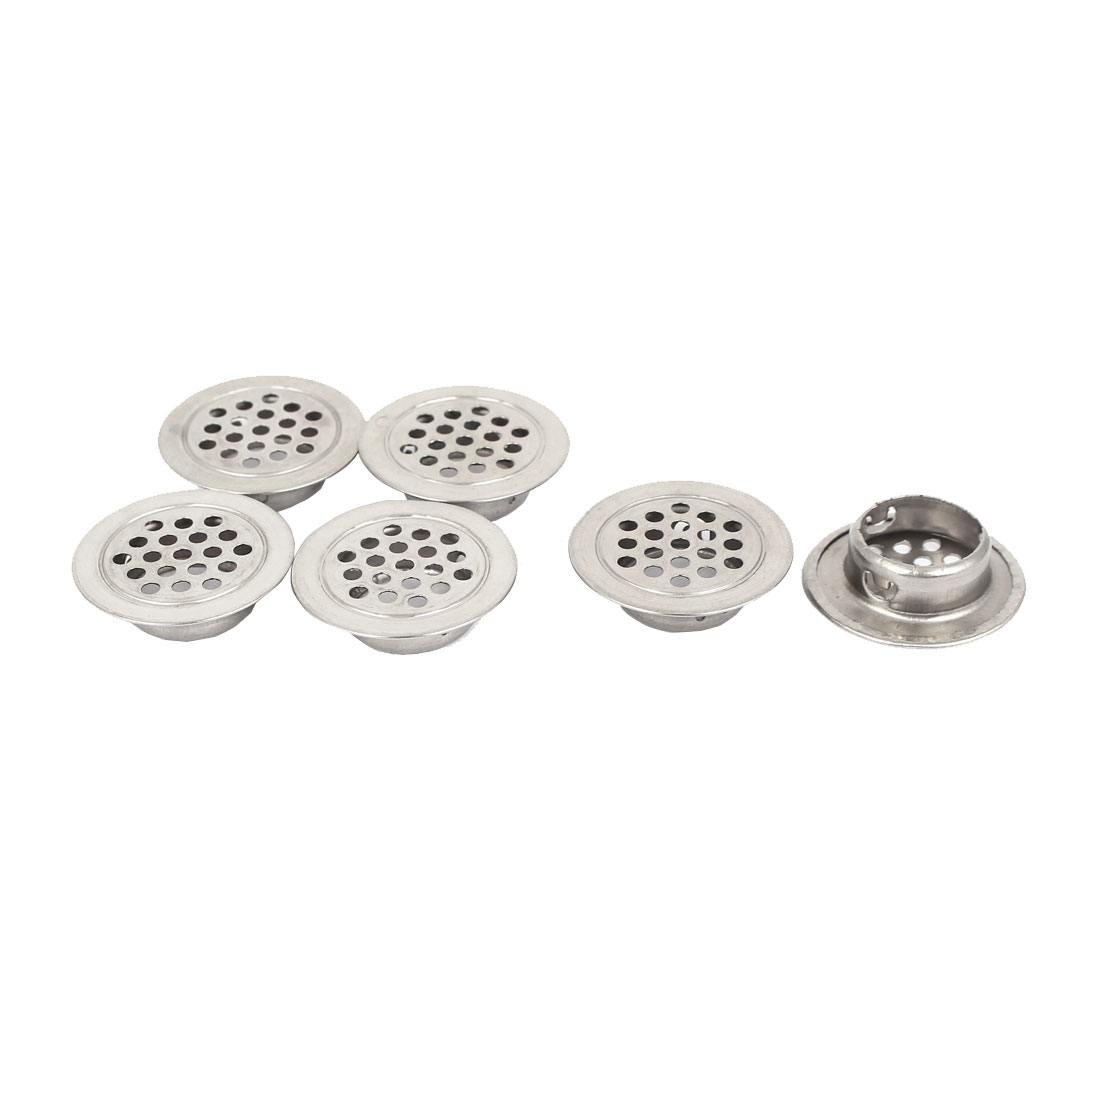 19mm Dia Flat Round Mesh Hole Stainless Steel Air Vents Ventilation Louvers 6pcs